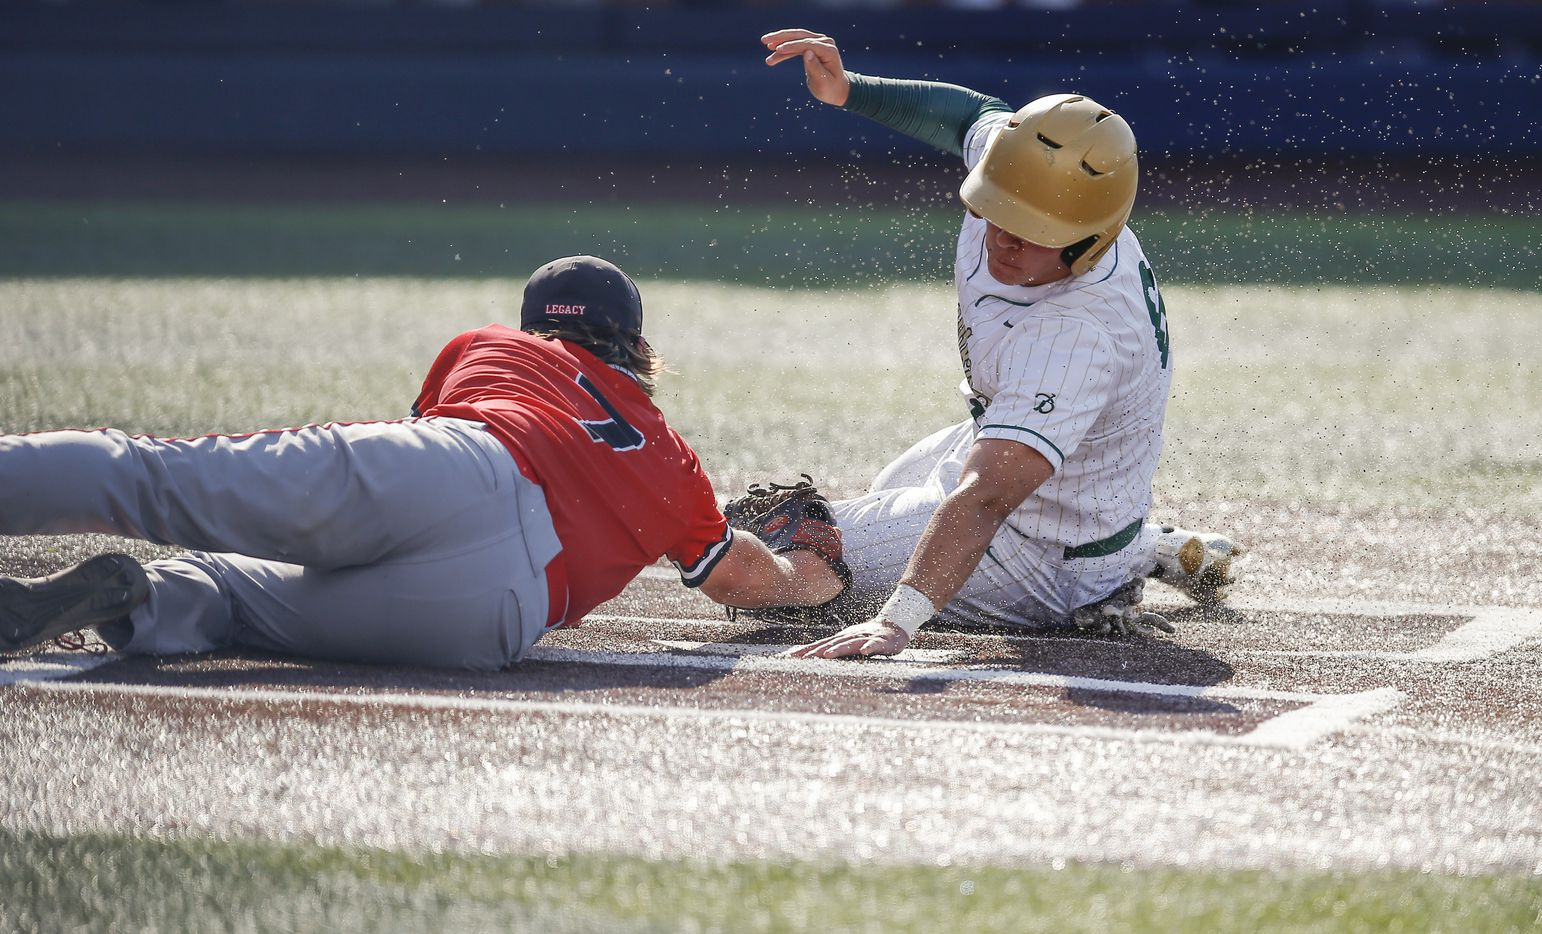 Mansfield Legacy pitcher Drake Dowd (7) is unable to make the tag as Birdville's Bynum Martinez (6) scores during the second inning of a high school Class 5A Region I  quarterfinal series baseball game at Dallas Baptist University, Thursday, May 20, 2021. (Brandon Wade/Special Contributor)